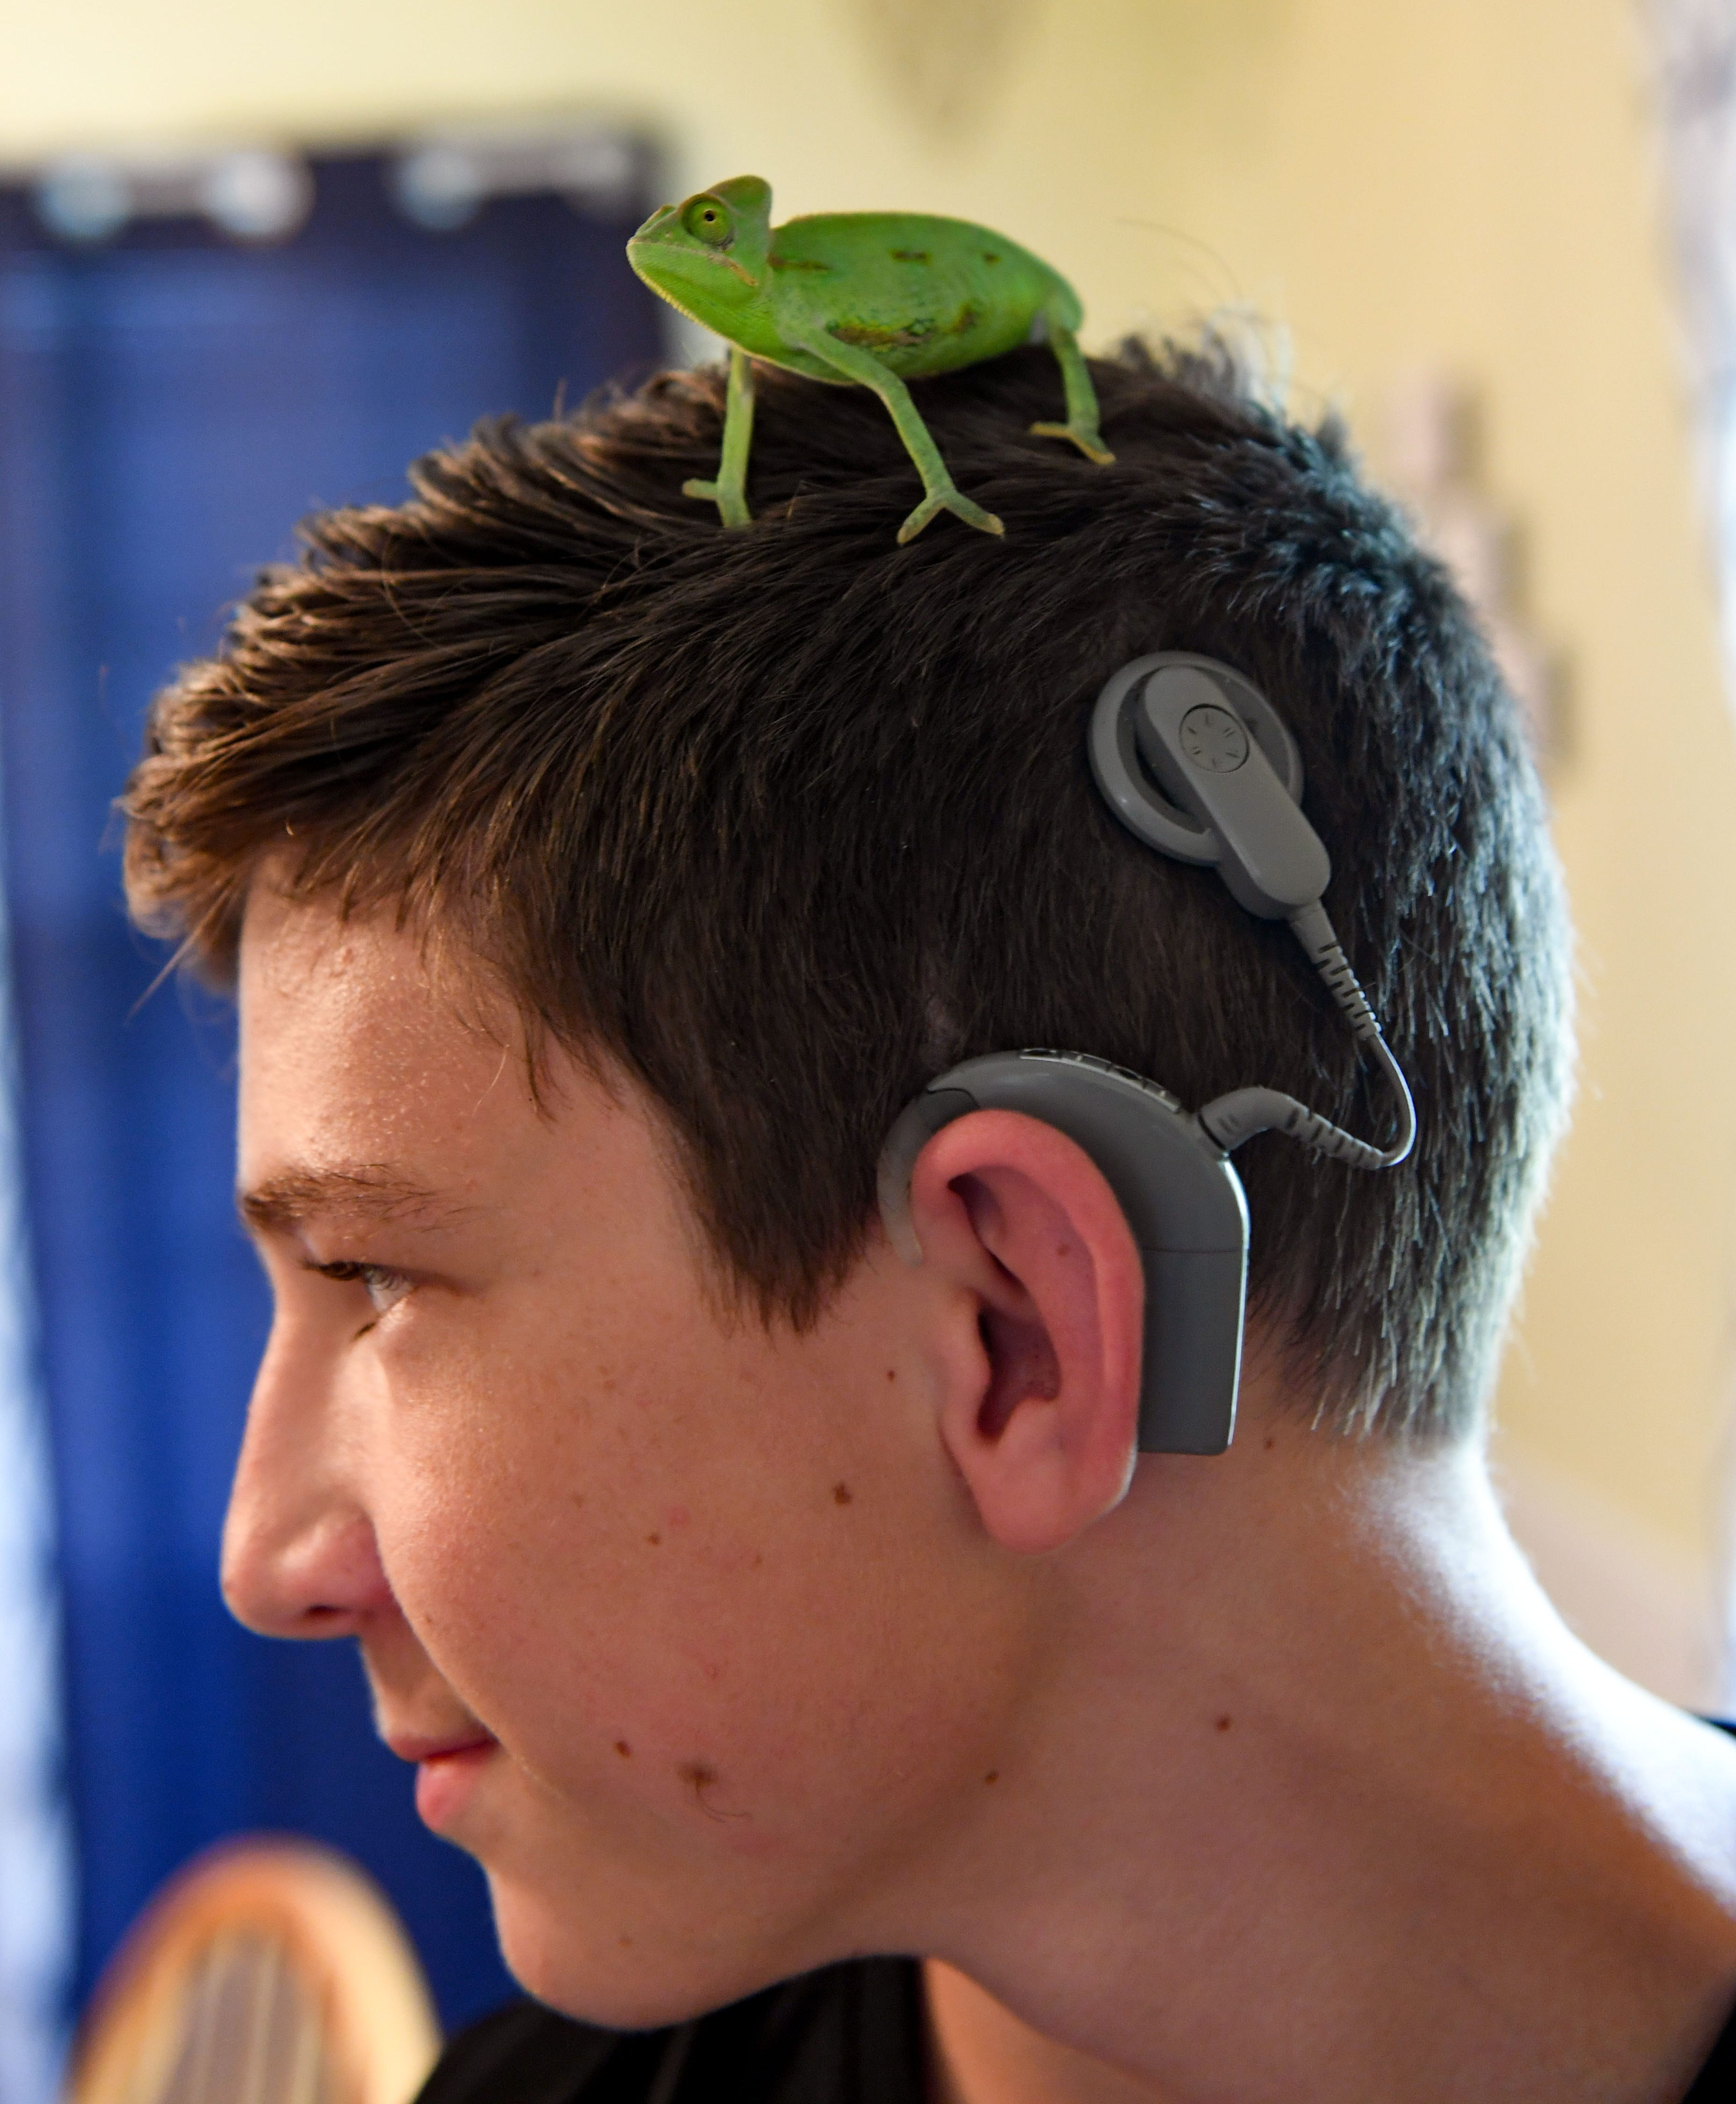 Trey Diedrich has a pet chameleon named Yoshi. Chameleons have a limited set of tones they can hear because they do not have traditional ears, which Shawna Diedrich says reminds her of Trey's deafness.